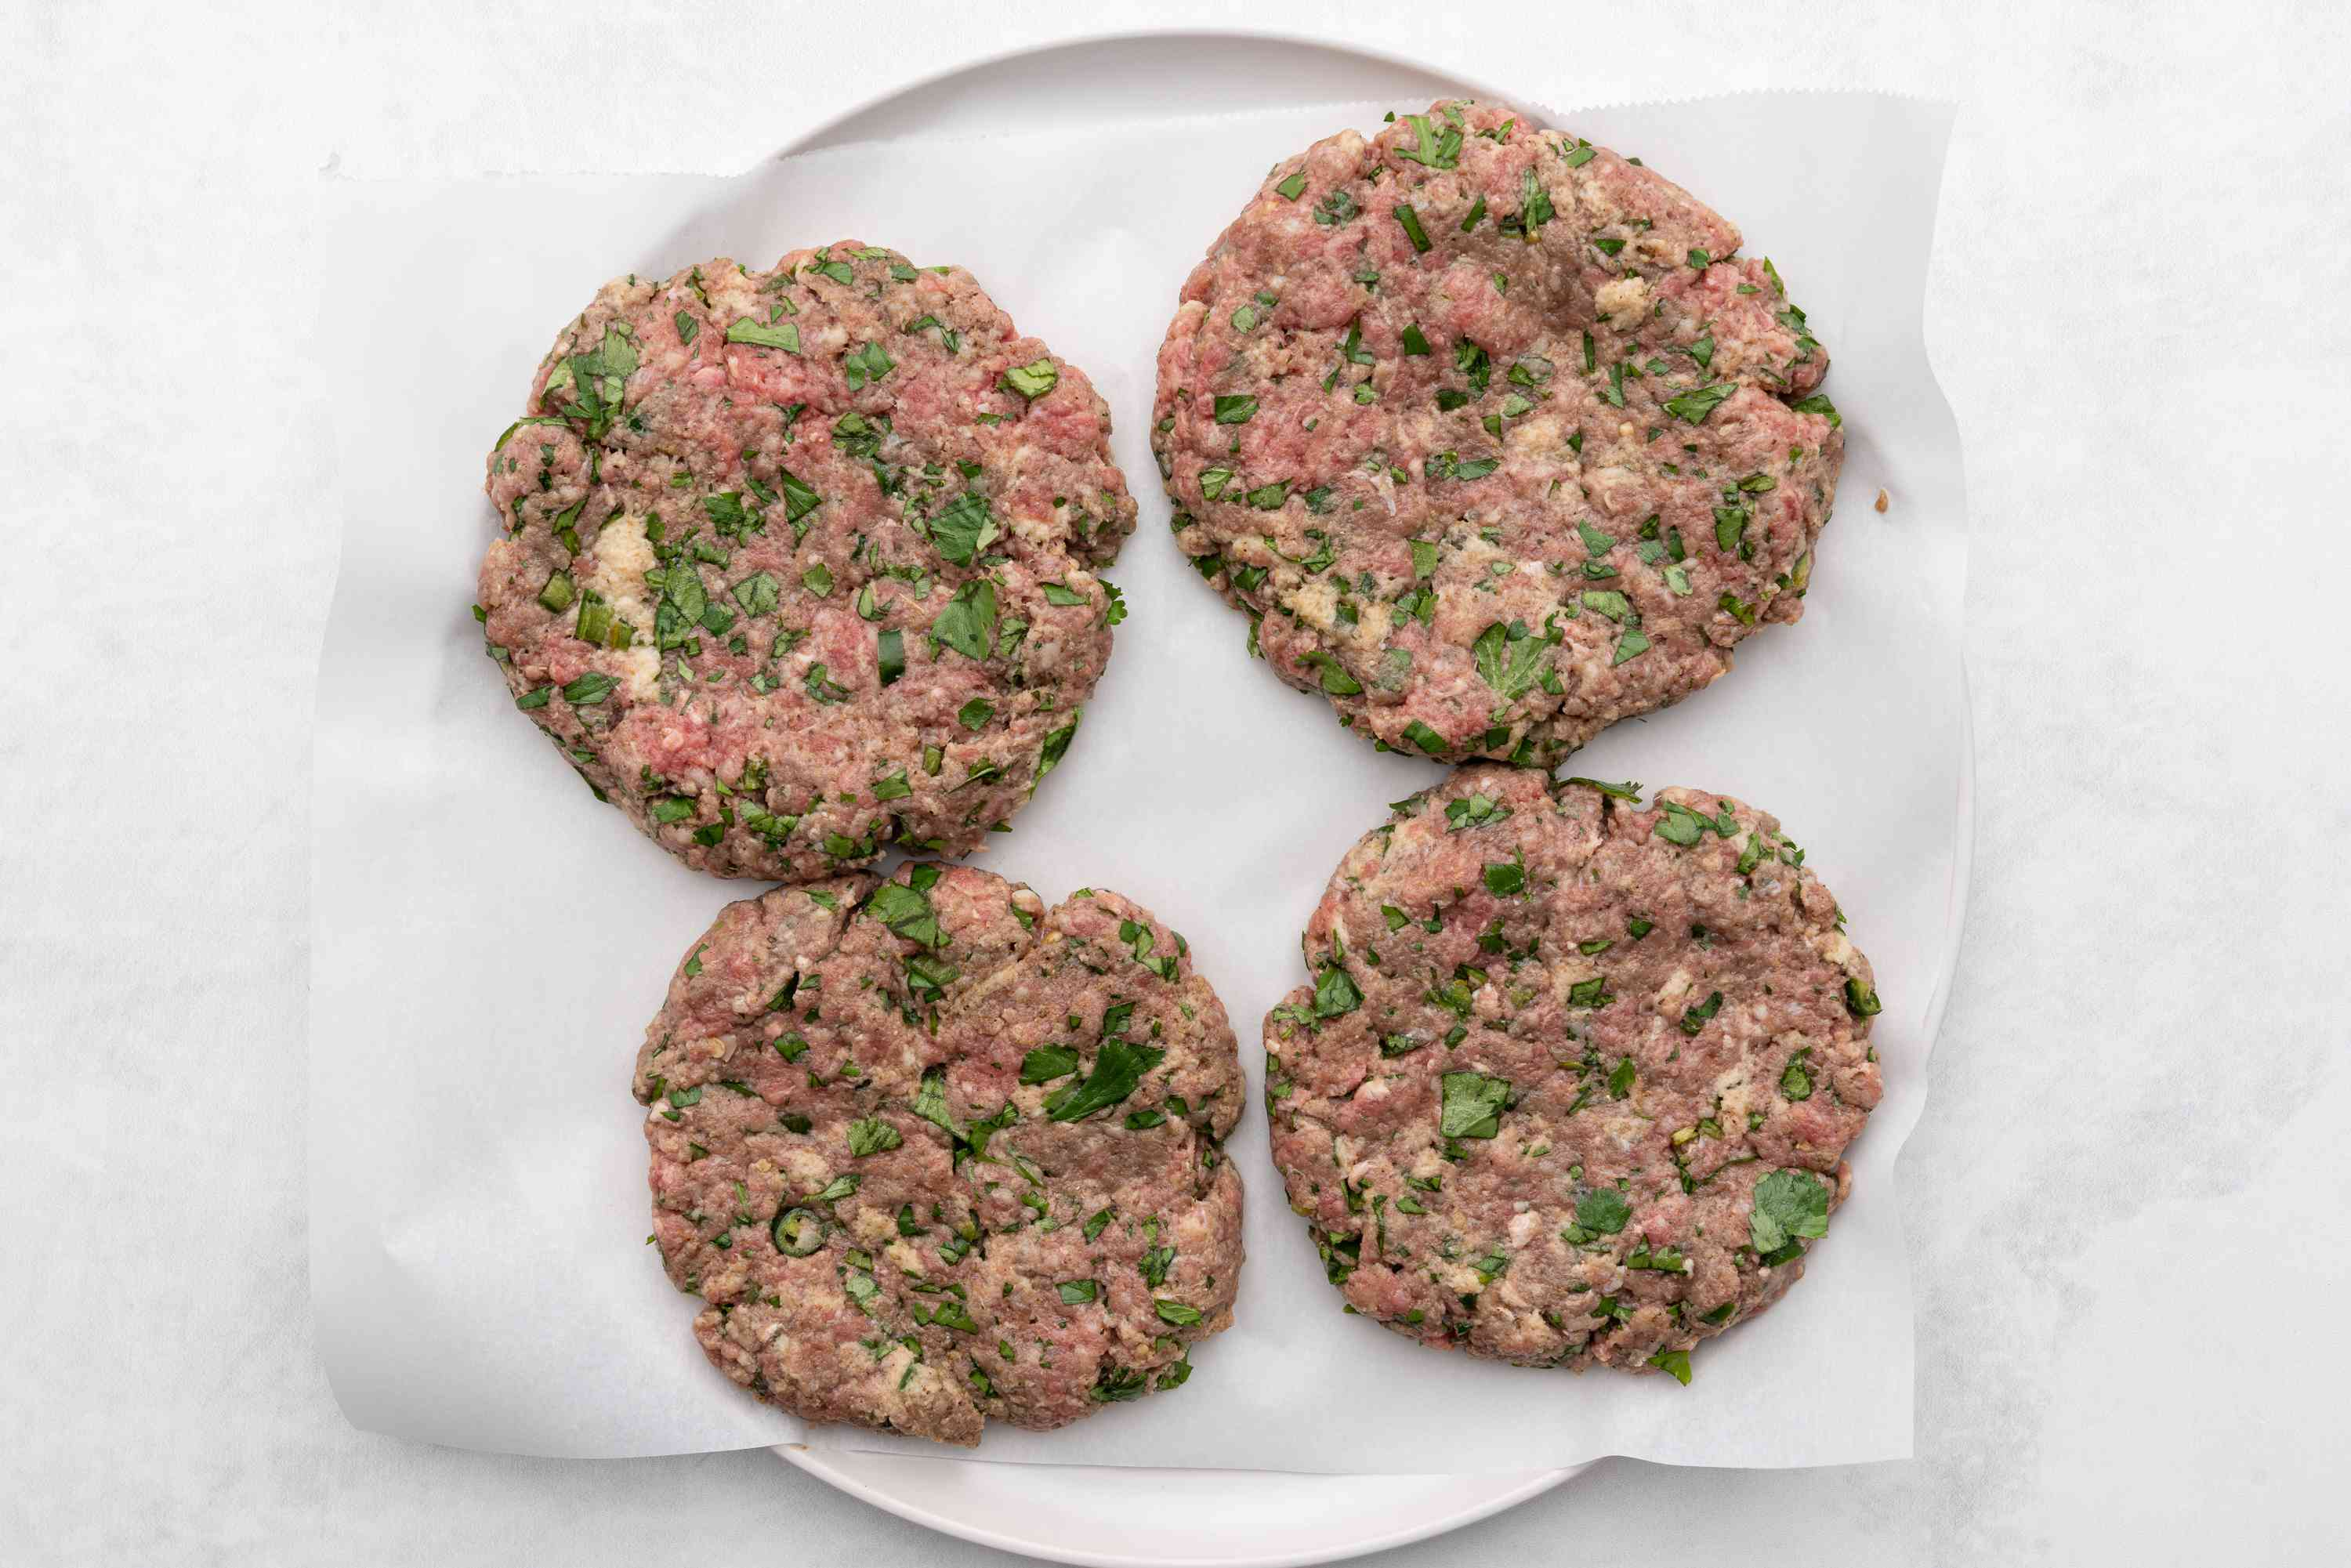 meat patties on a plate